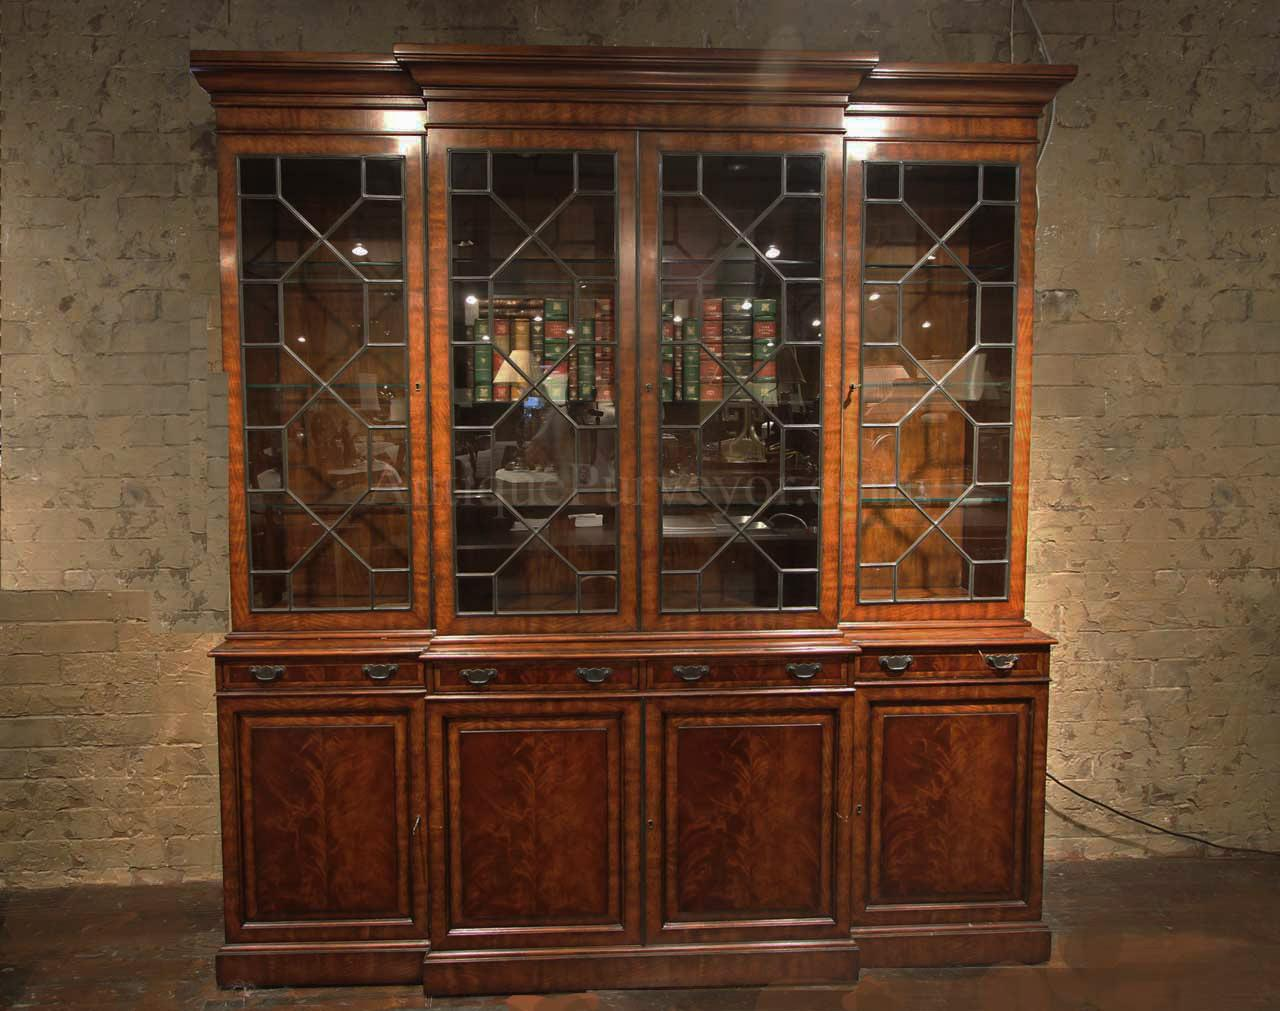 Superieur Large Antique Reproduction Mahogany China Cabinet With Lights